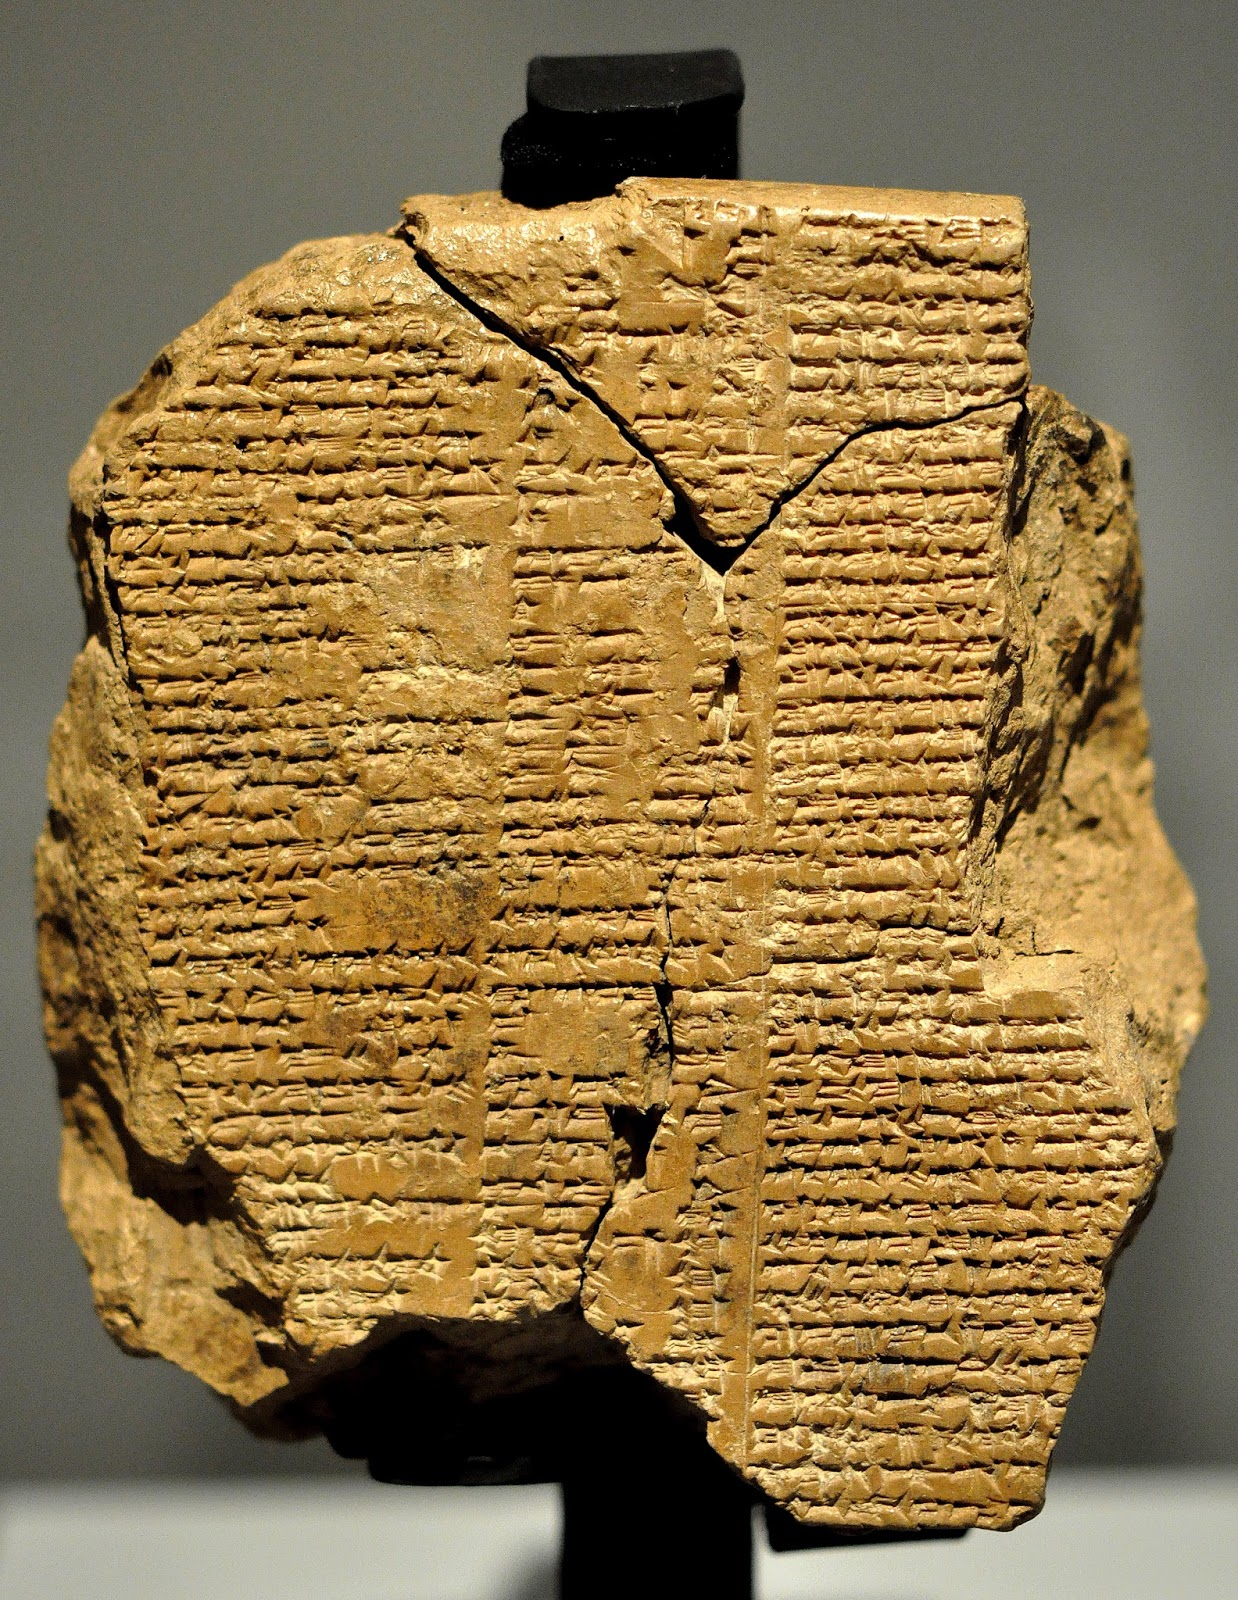 Tablet-Epic of Gilgamesh